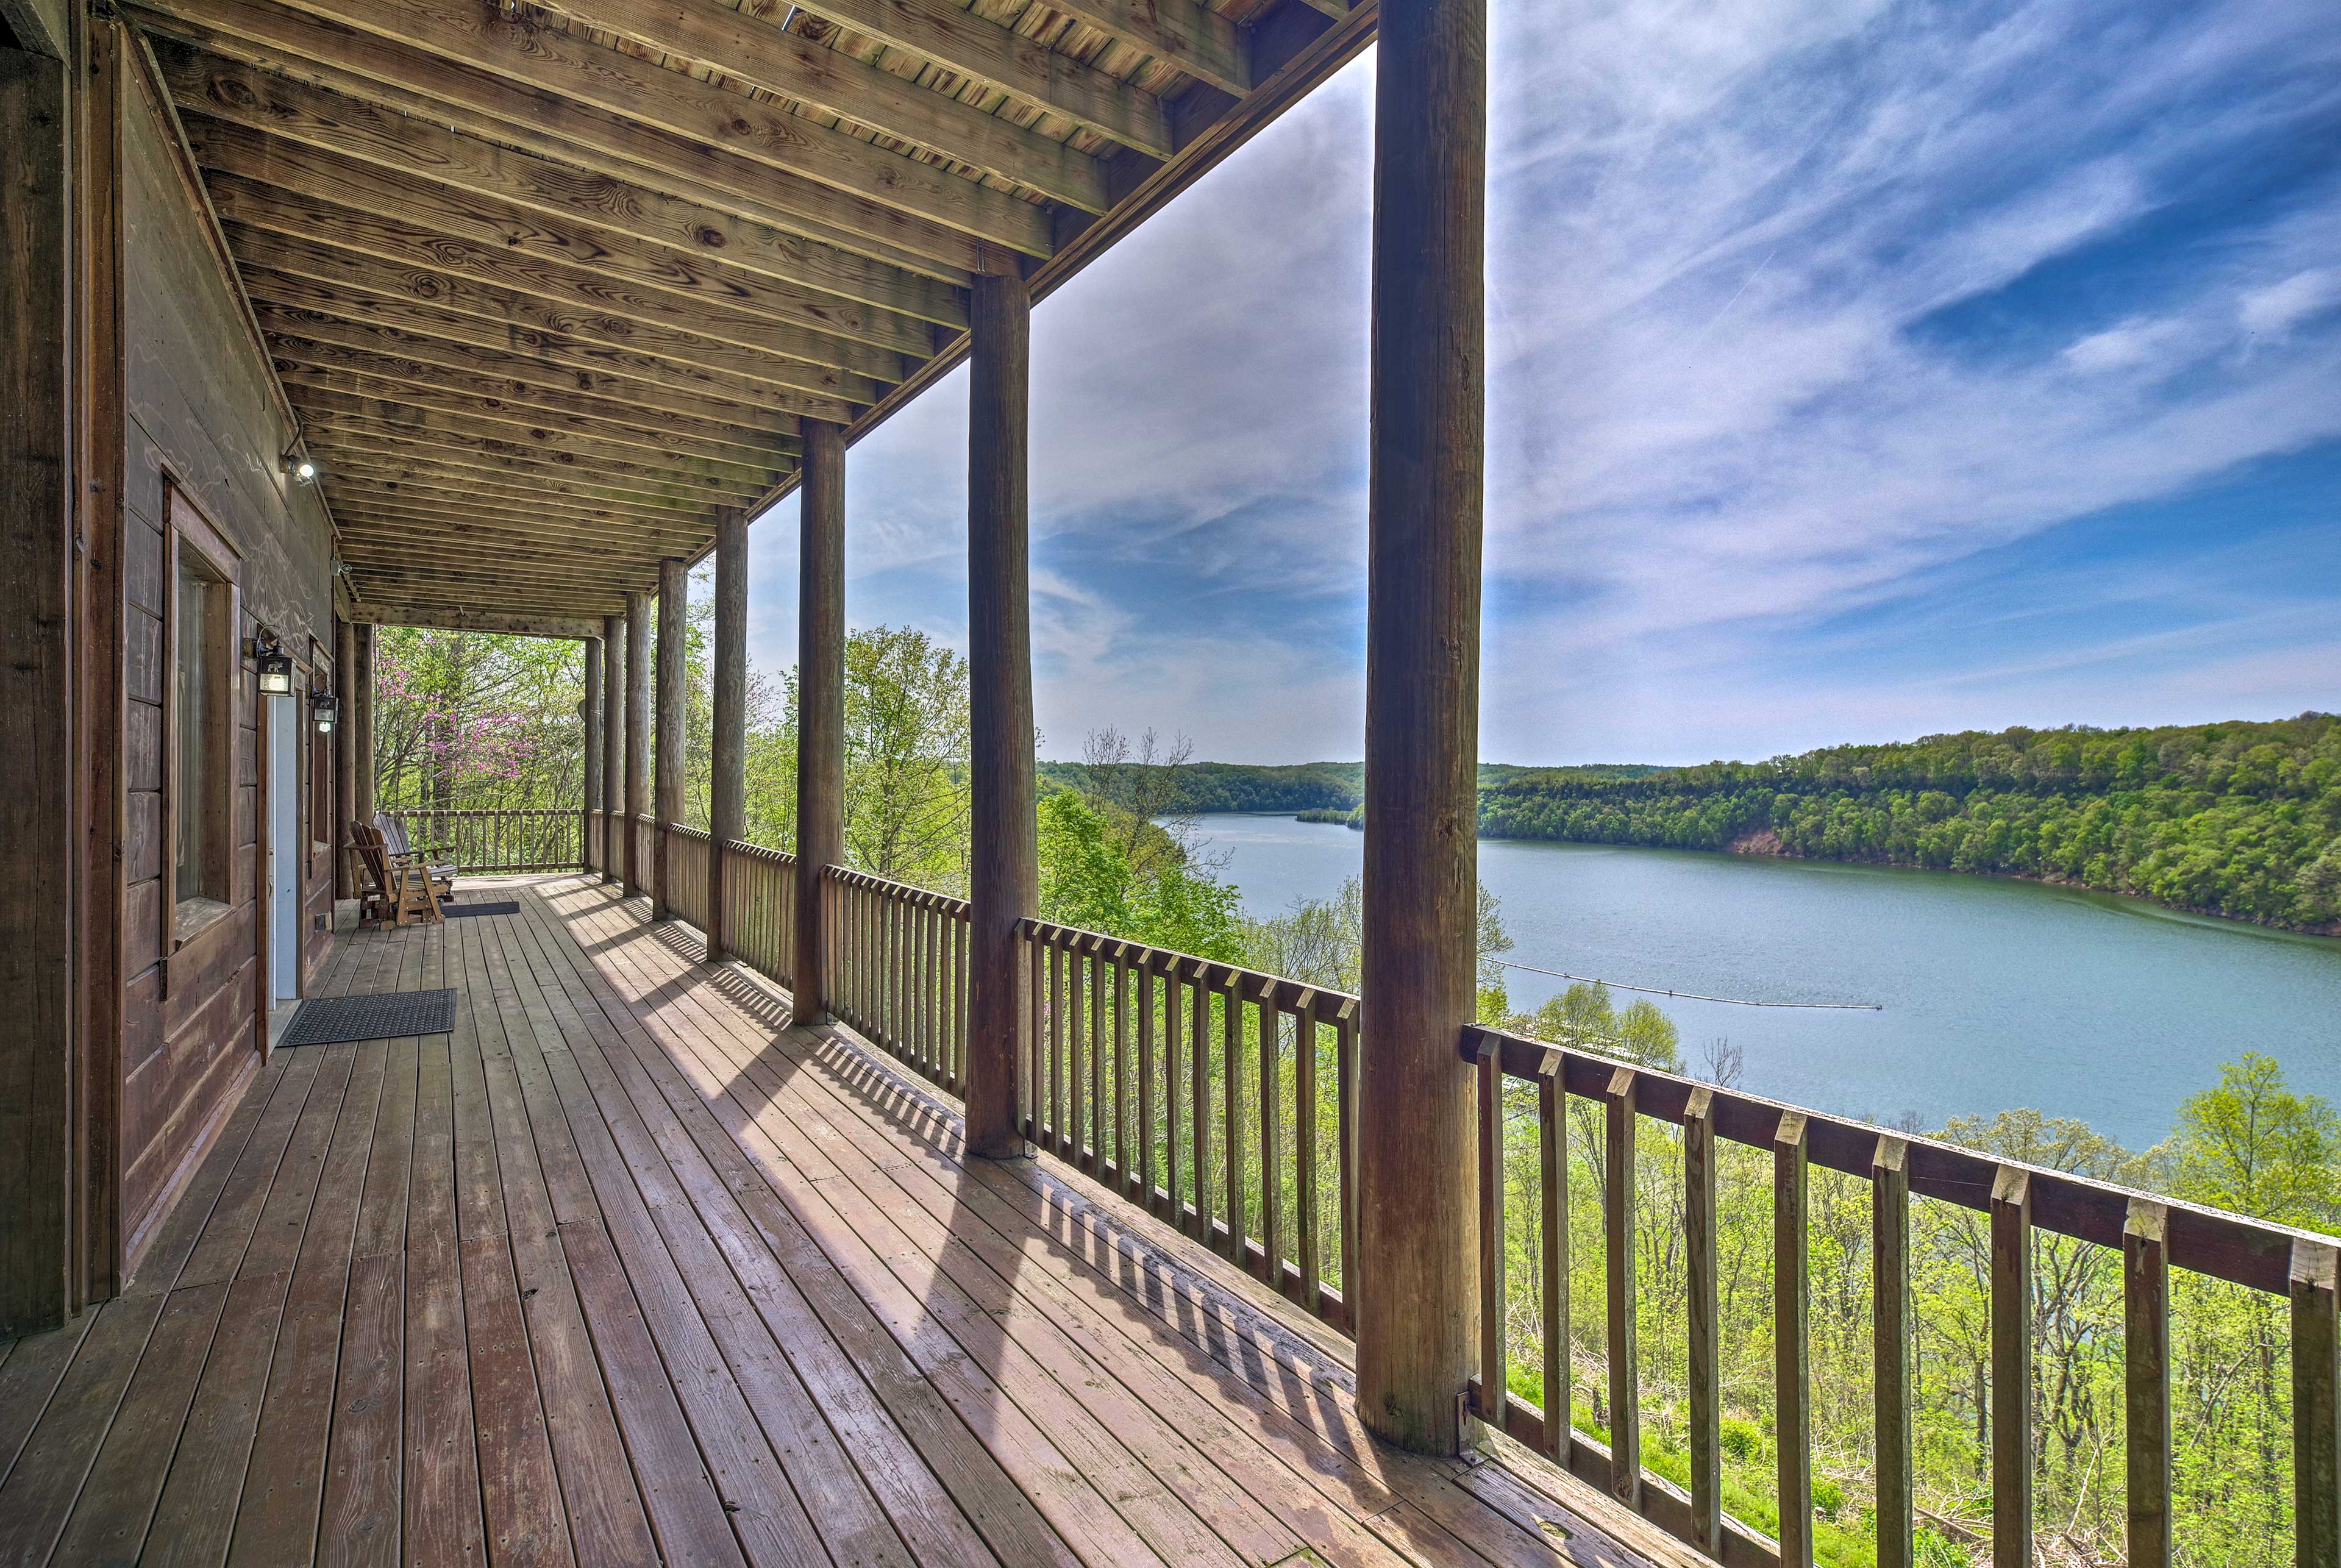 Step outside for fresh air and water views.